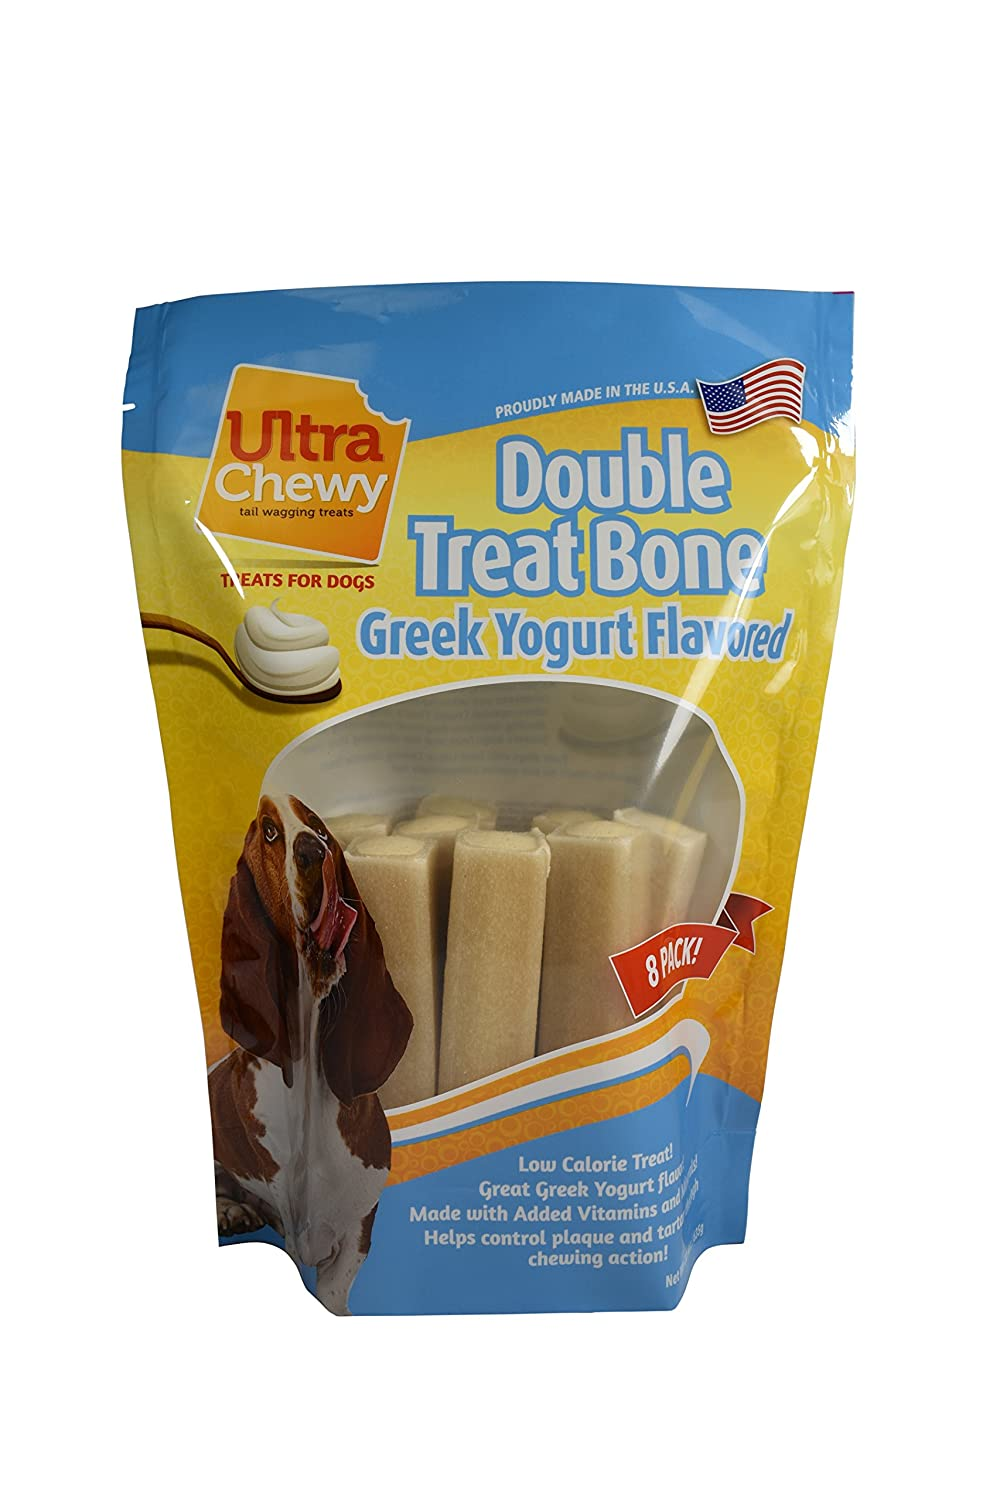 Ultra Chewy Greek Yogurt Flavored Double Treat Bone Value Pack Includes 2 Packages